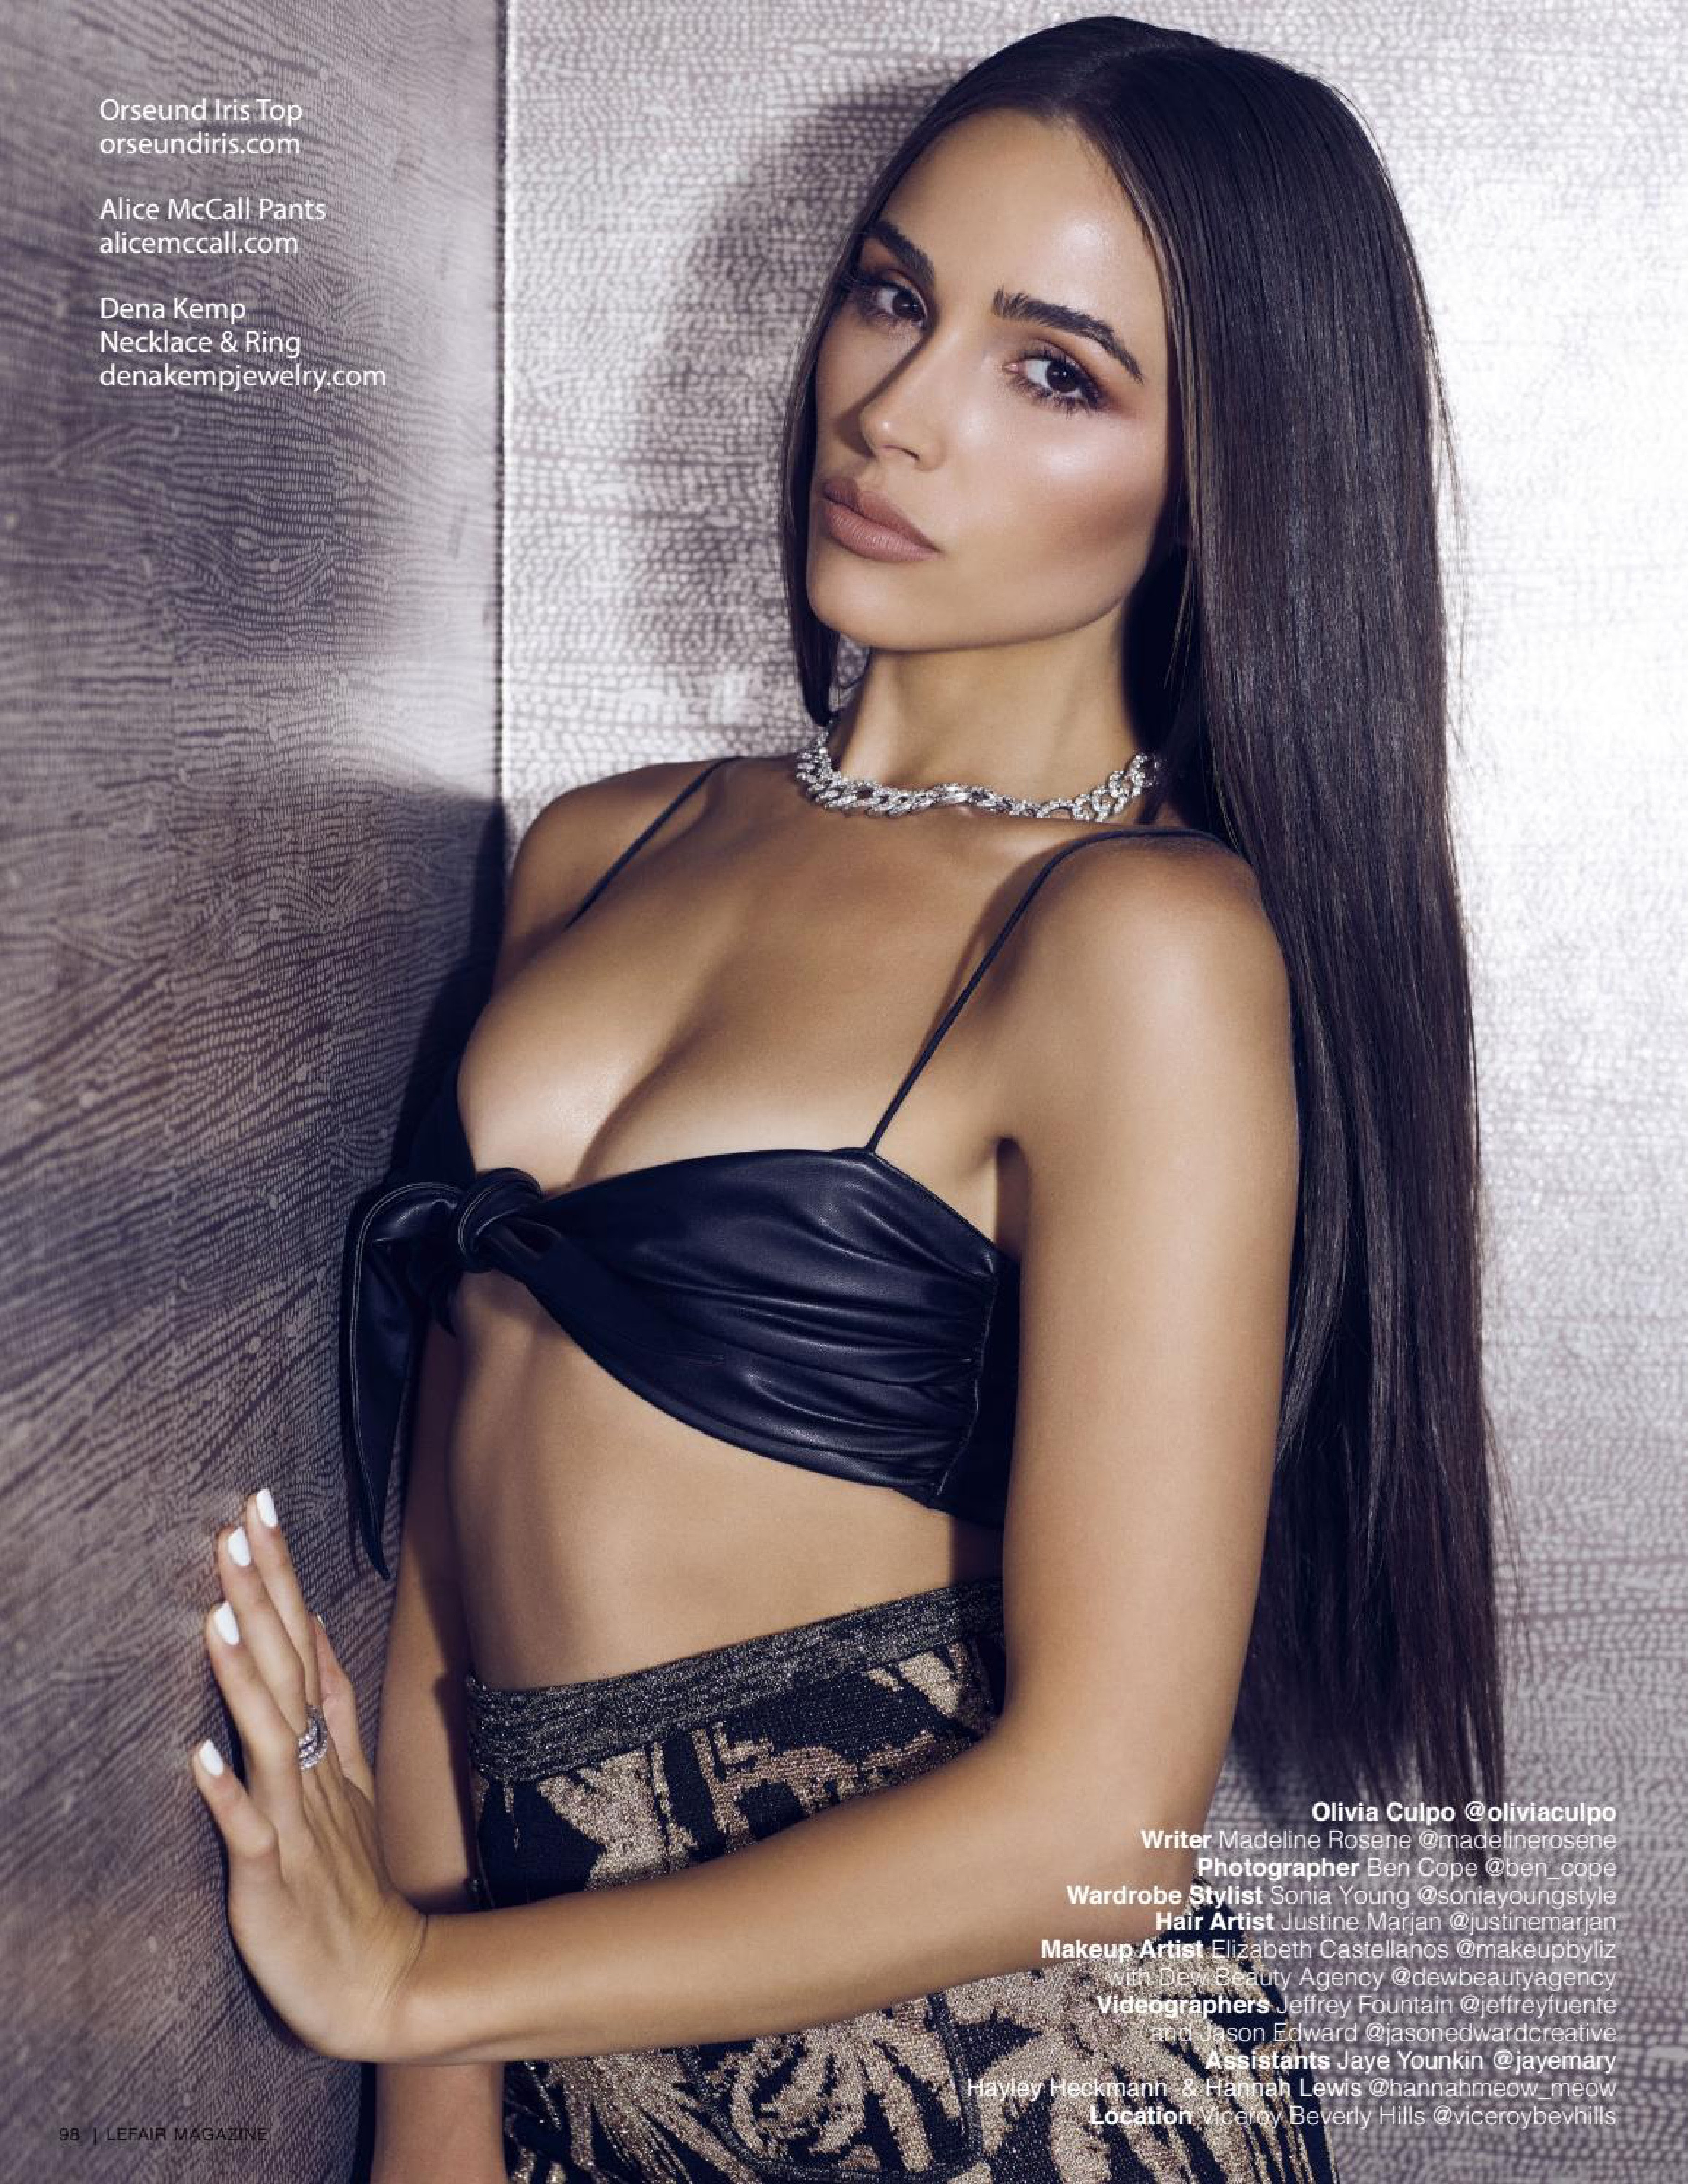 Olivia Culpo - Lefair Magazine Scans - Sexy Actress Pictures | Hot Actress Pictures - ActressSnaps.com